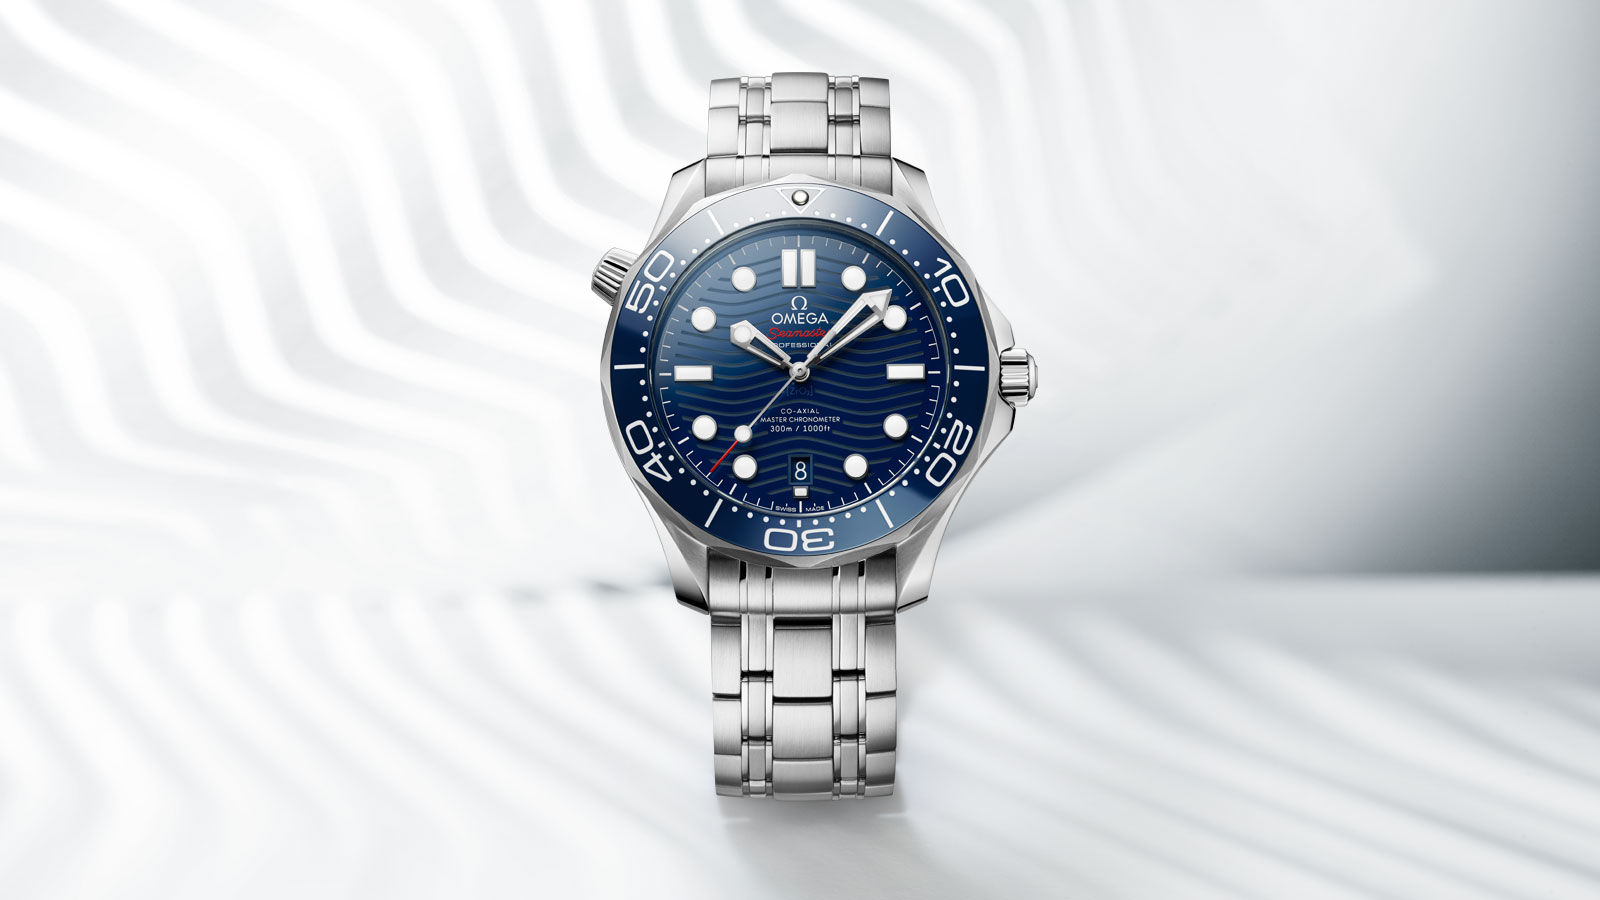 Front view of the Divers 300M watch in stainless steel with a dark blue dial and bezel